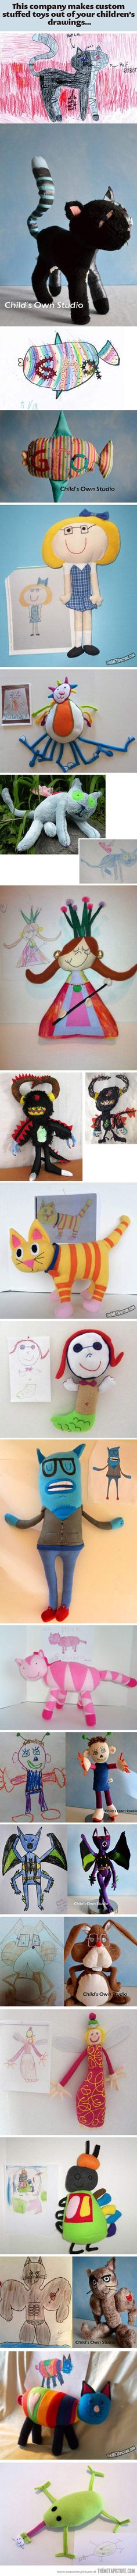 Company that makes the crazy creations your kids draw into stuffed animals